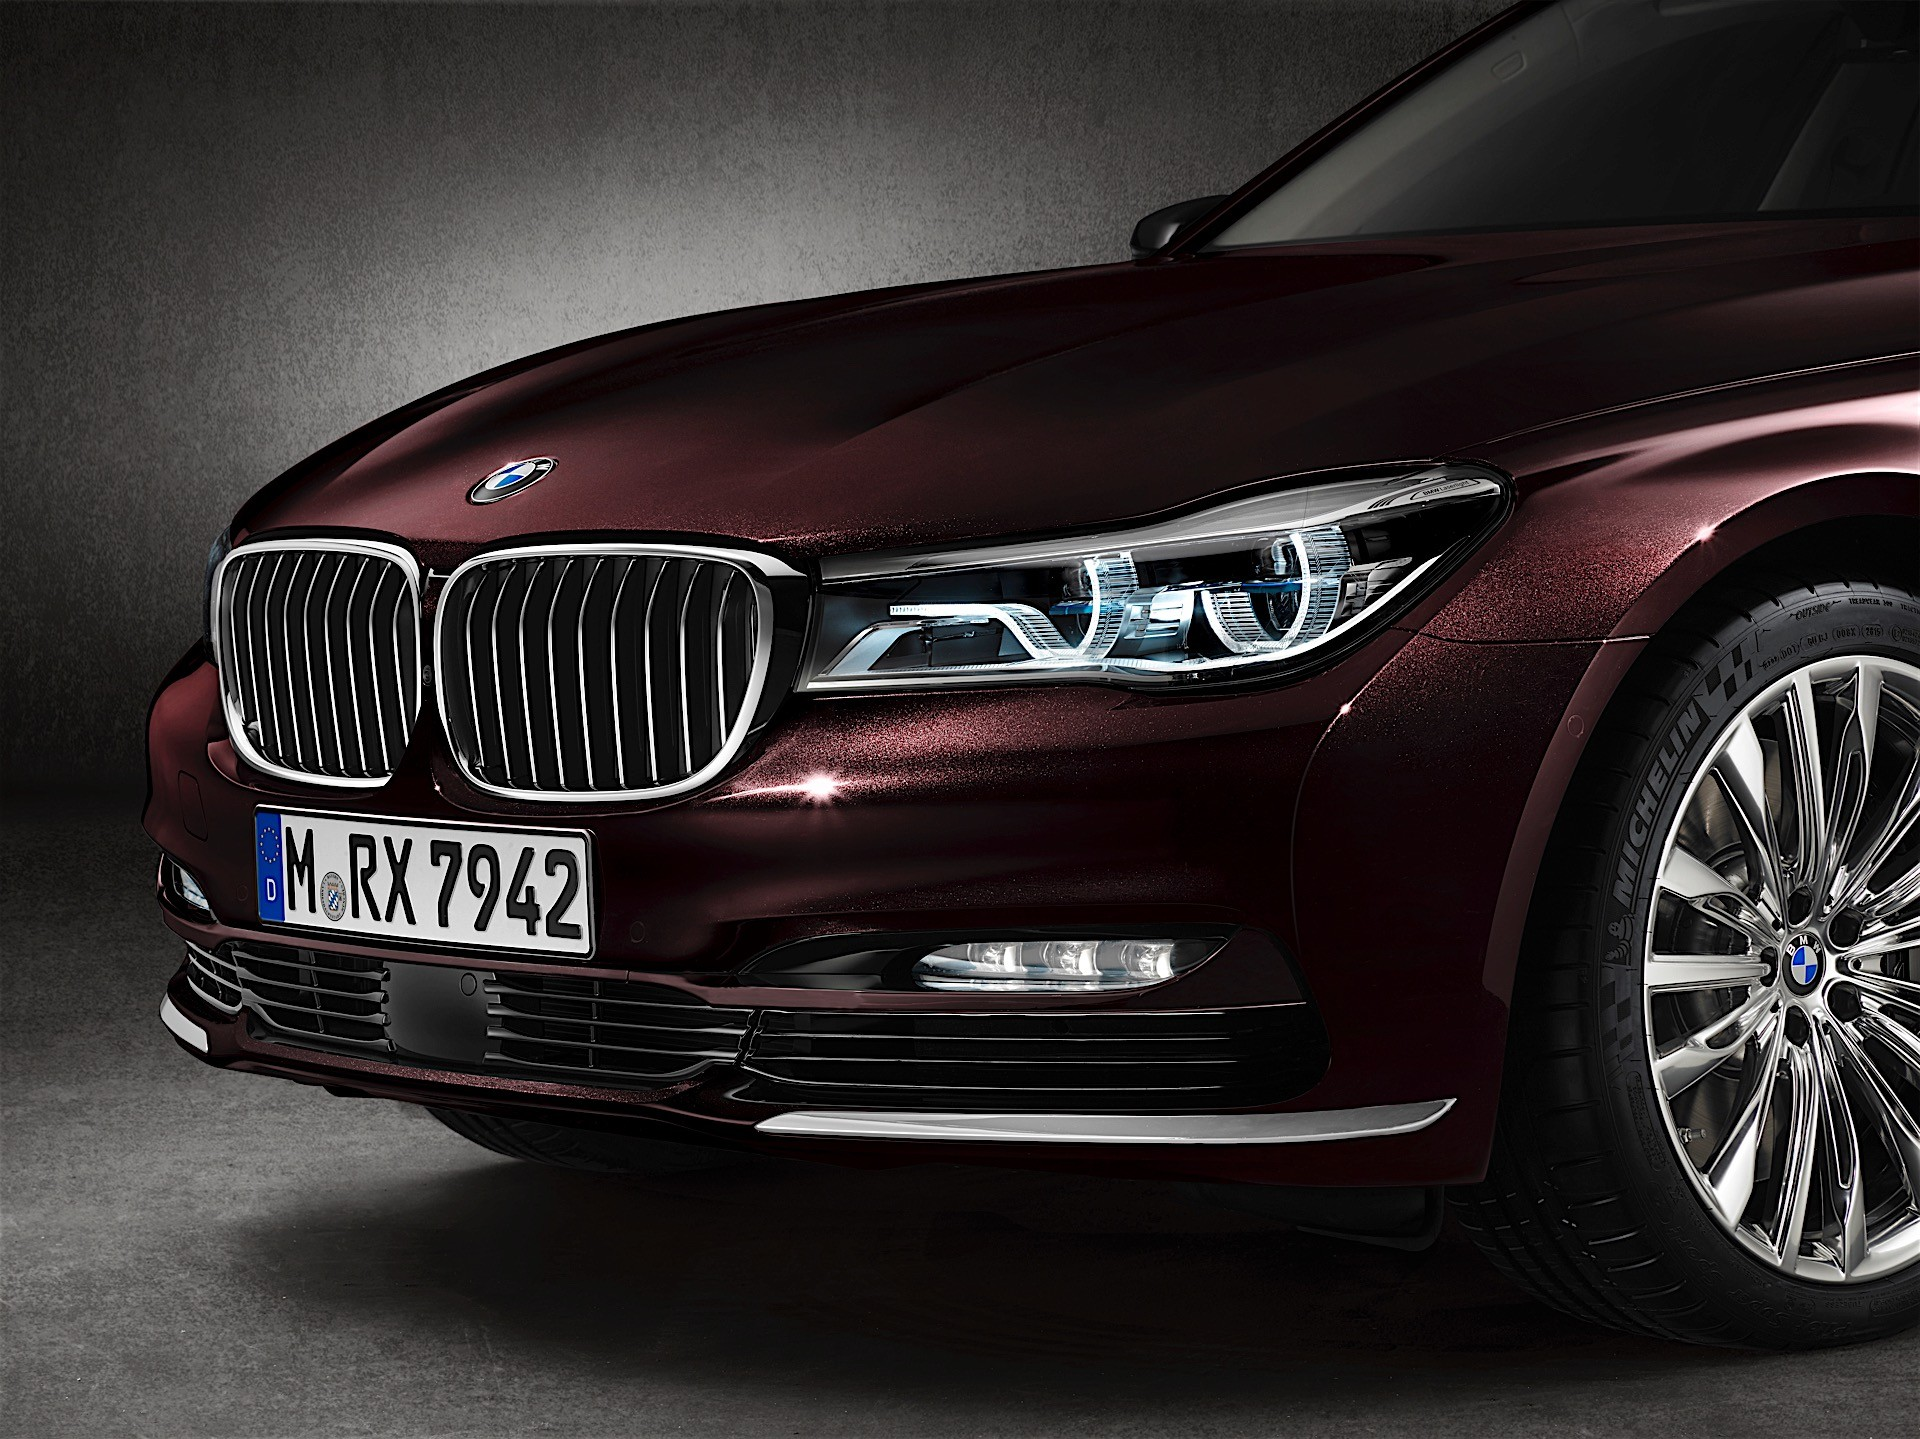 BMWs Release Of The M760Li Comes Just A Few Days After Alpina Released First Images B7 Its Version 7 Series Like